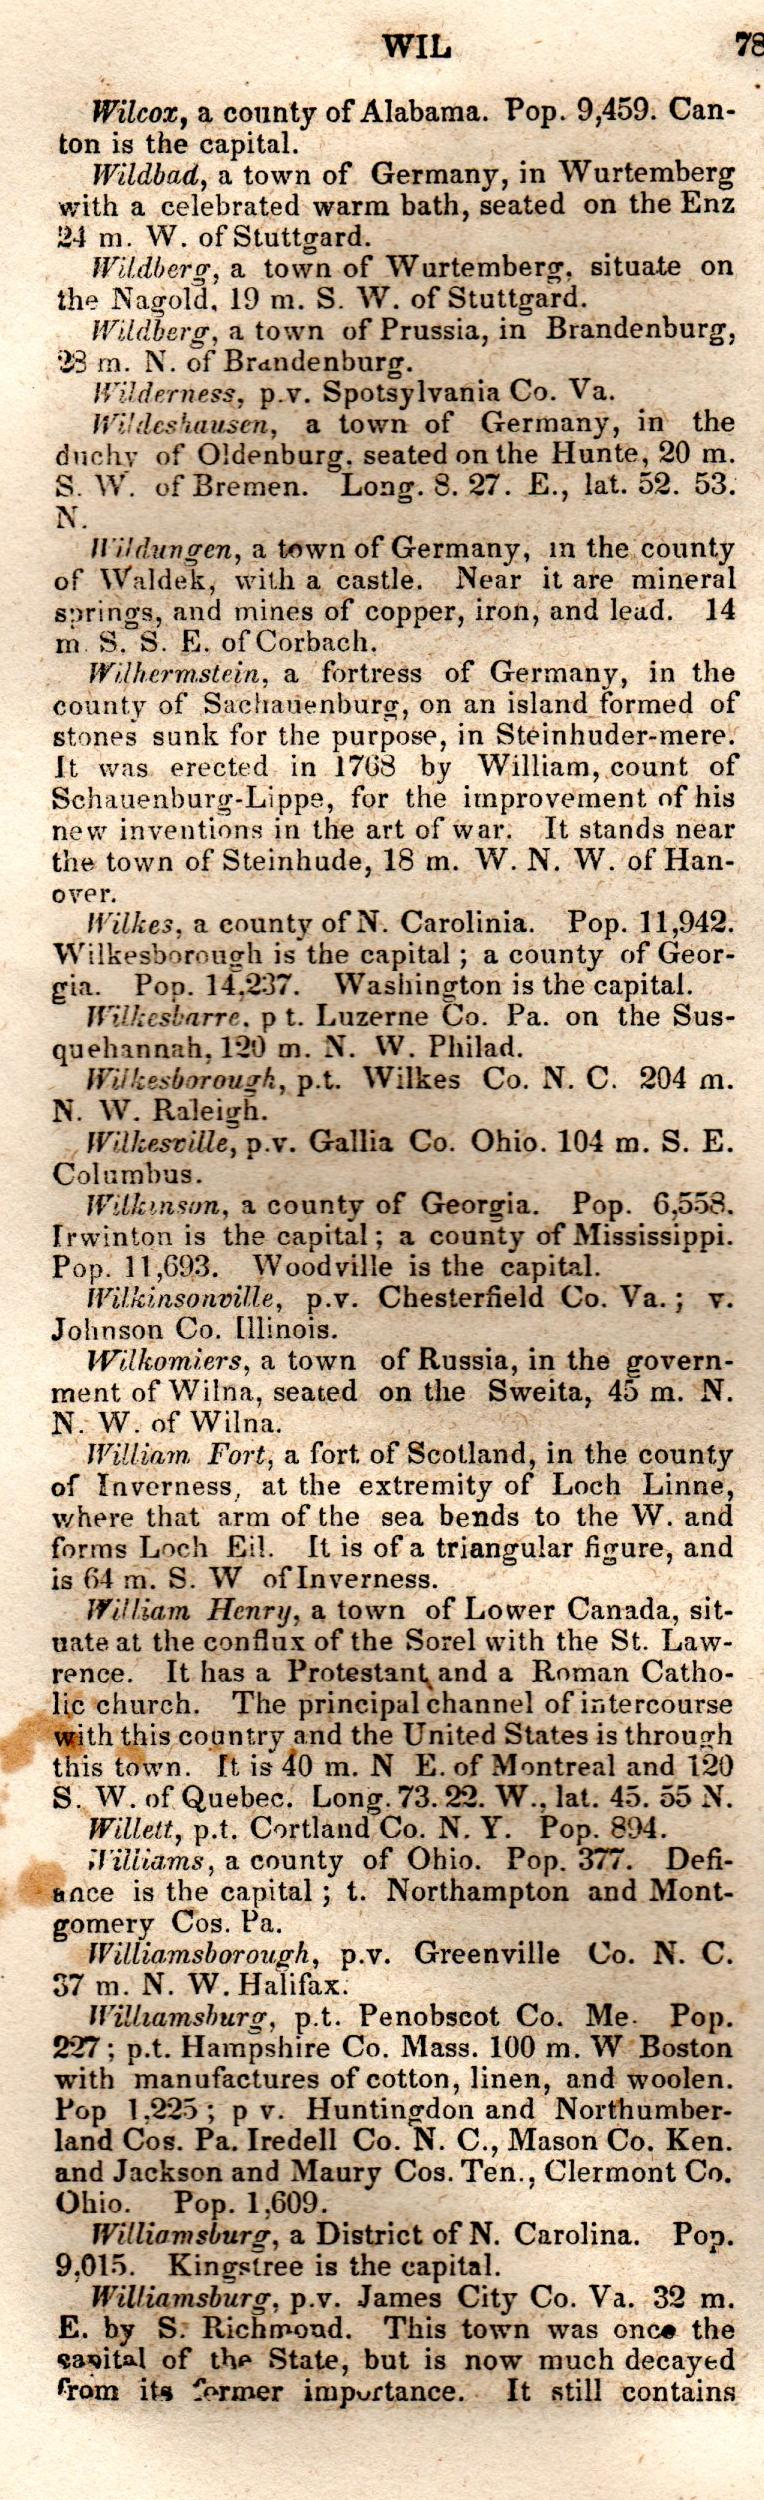 Brookes' Universal Gazetteer (1850), Page  781  Left Column